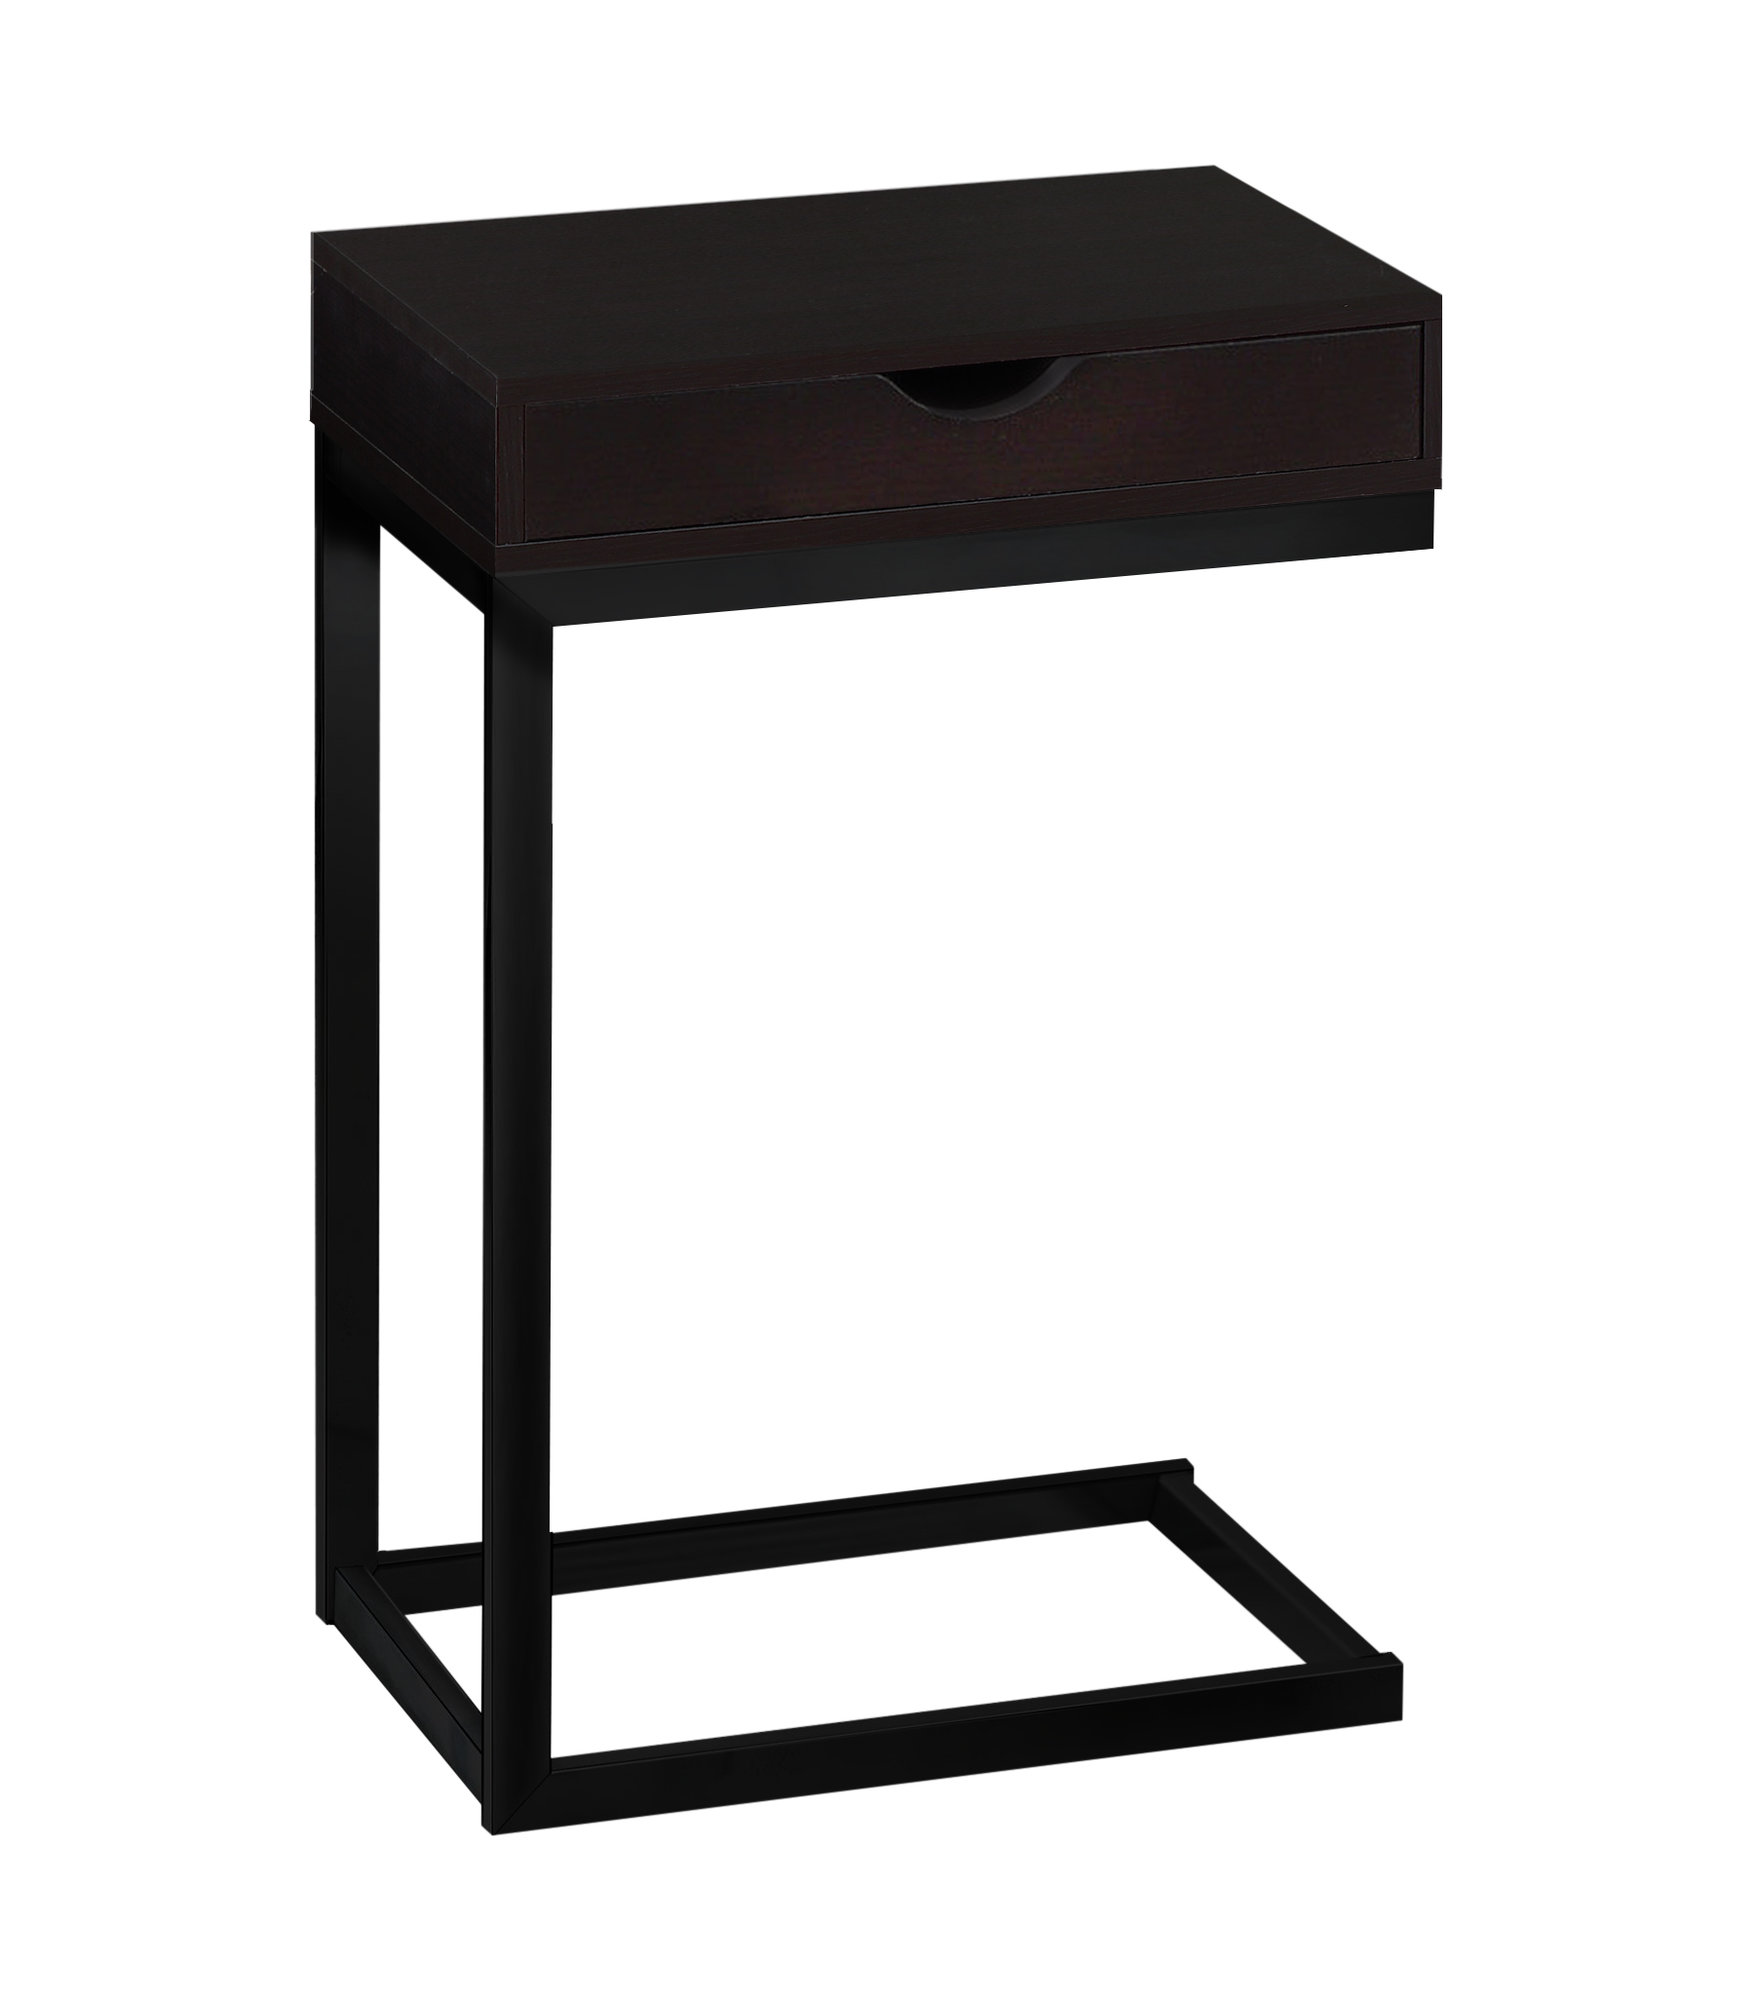 """10.25"""" x 15.75"""" x 24.5"""" Cappuccino Finish and Black Metal Accent Table"""